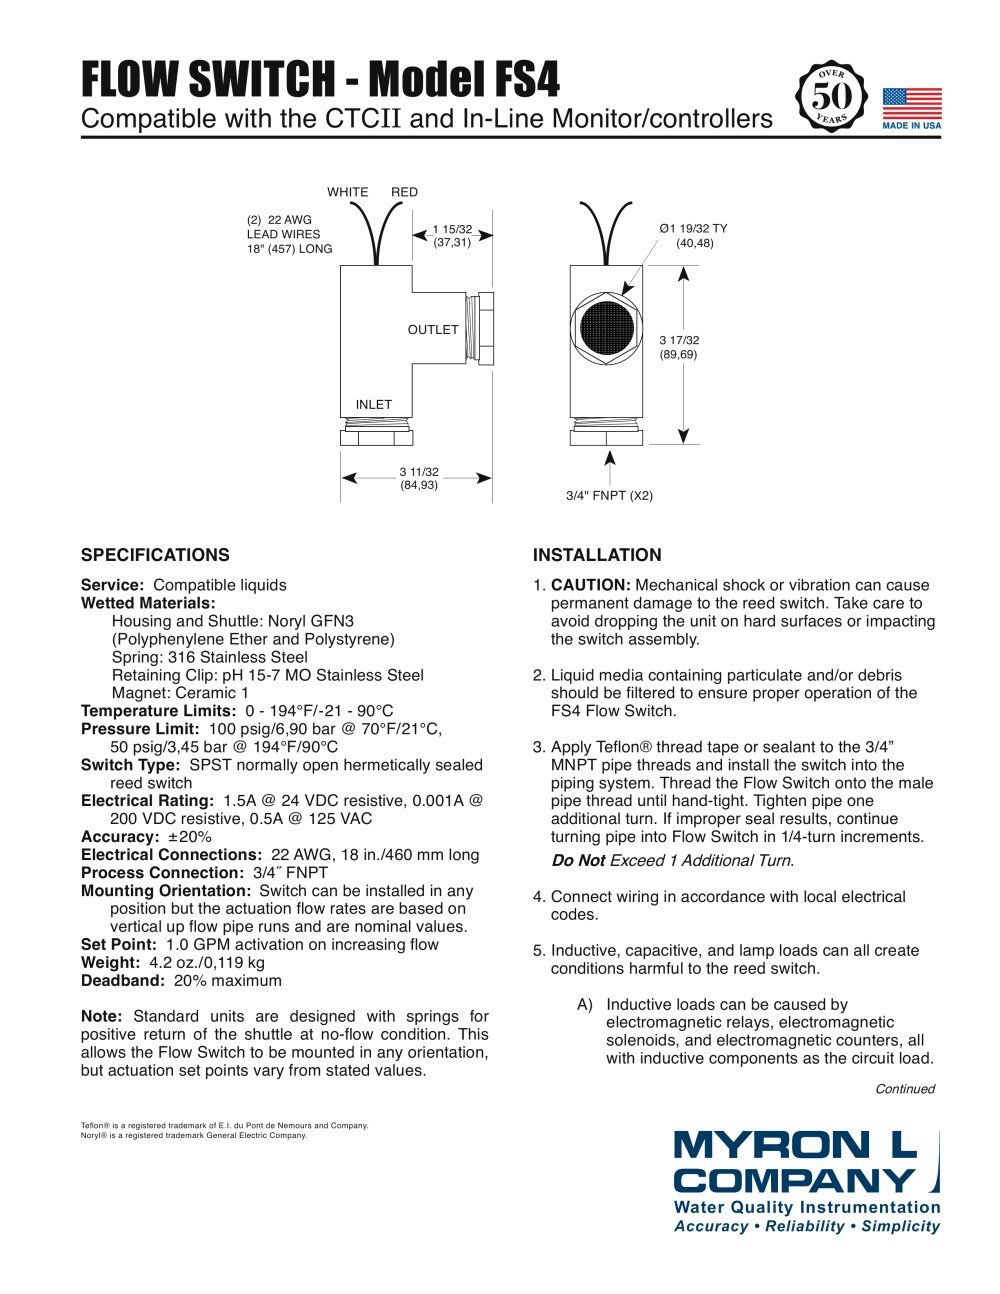 Flow Switch Model Fs4 Myron L Company Pdf Catalogue Reed Wiring Diagram 1 2 Pages